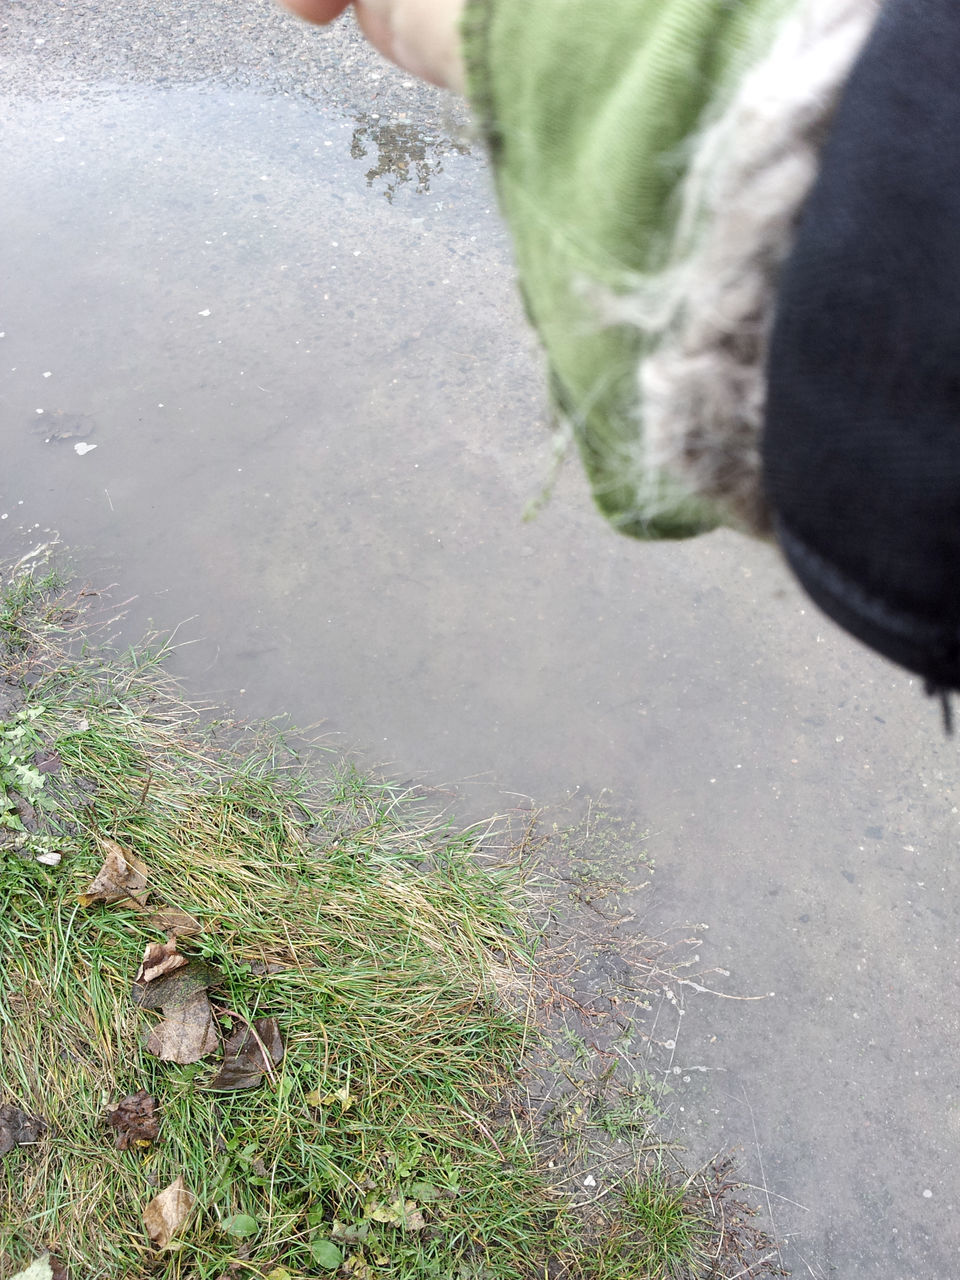 CLOSE-UP LOW SECTION OF PERSON IN WATER